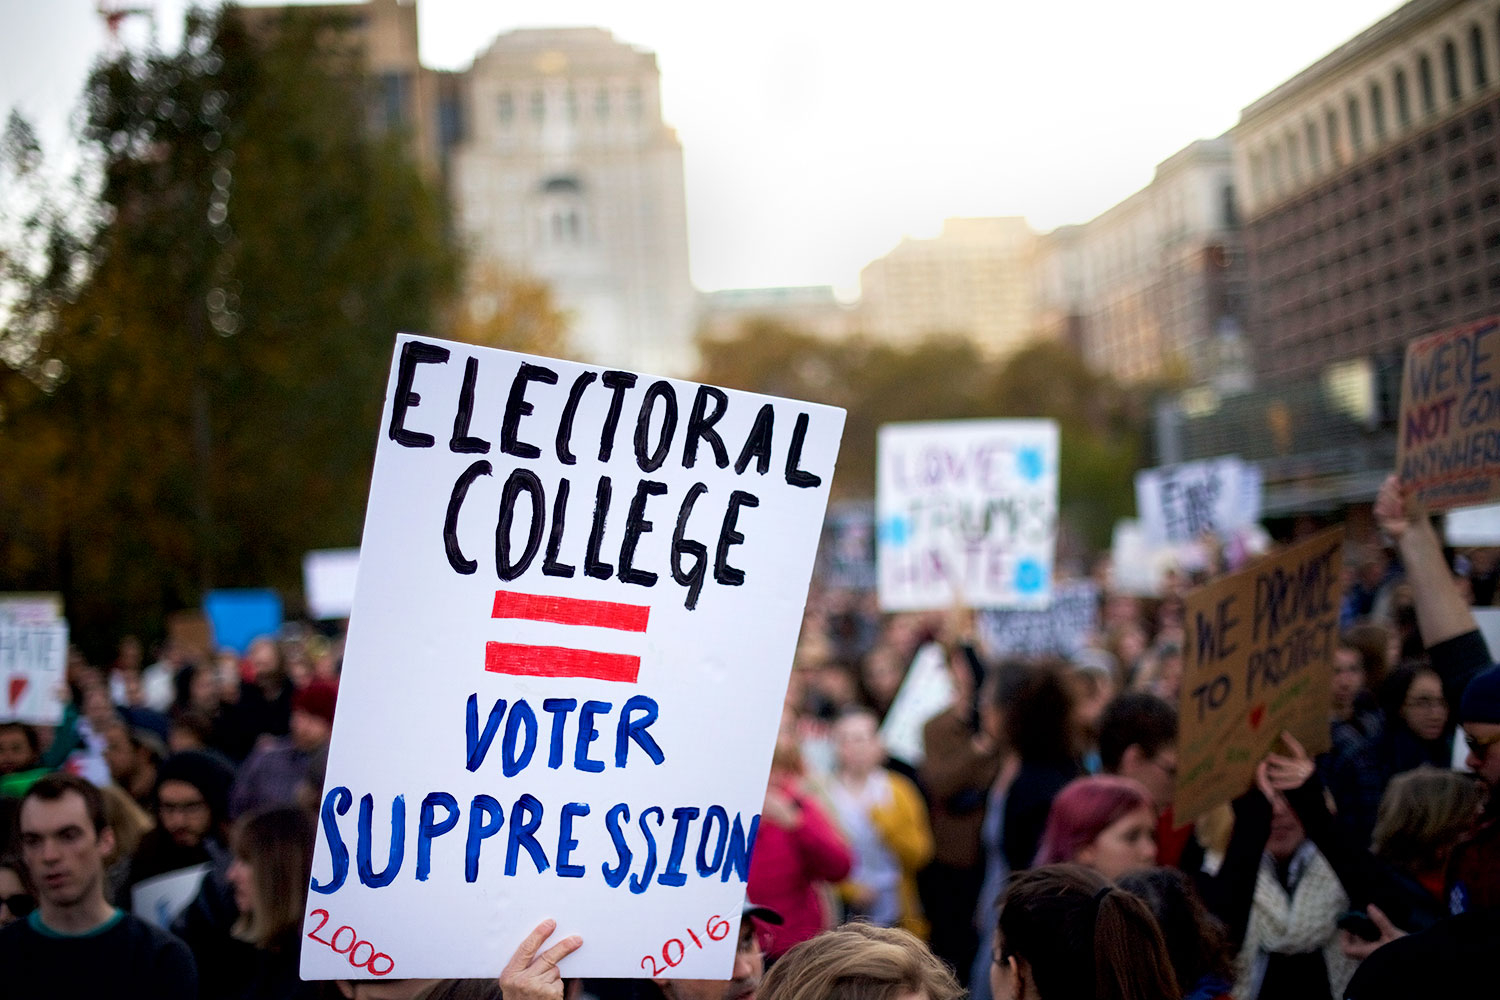 How the Electoral College Rigged the Election for Donald Trump